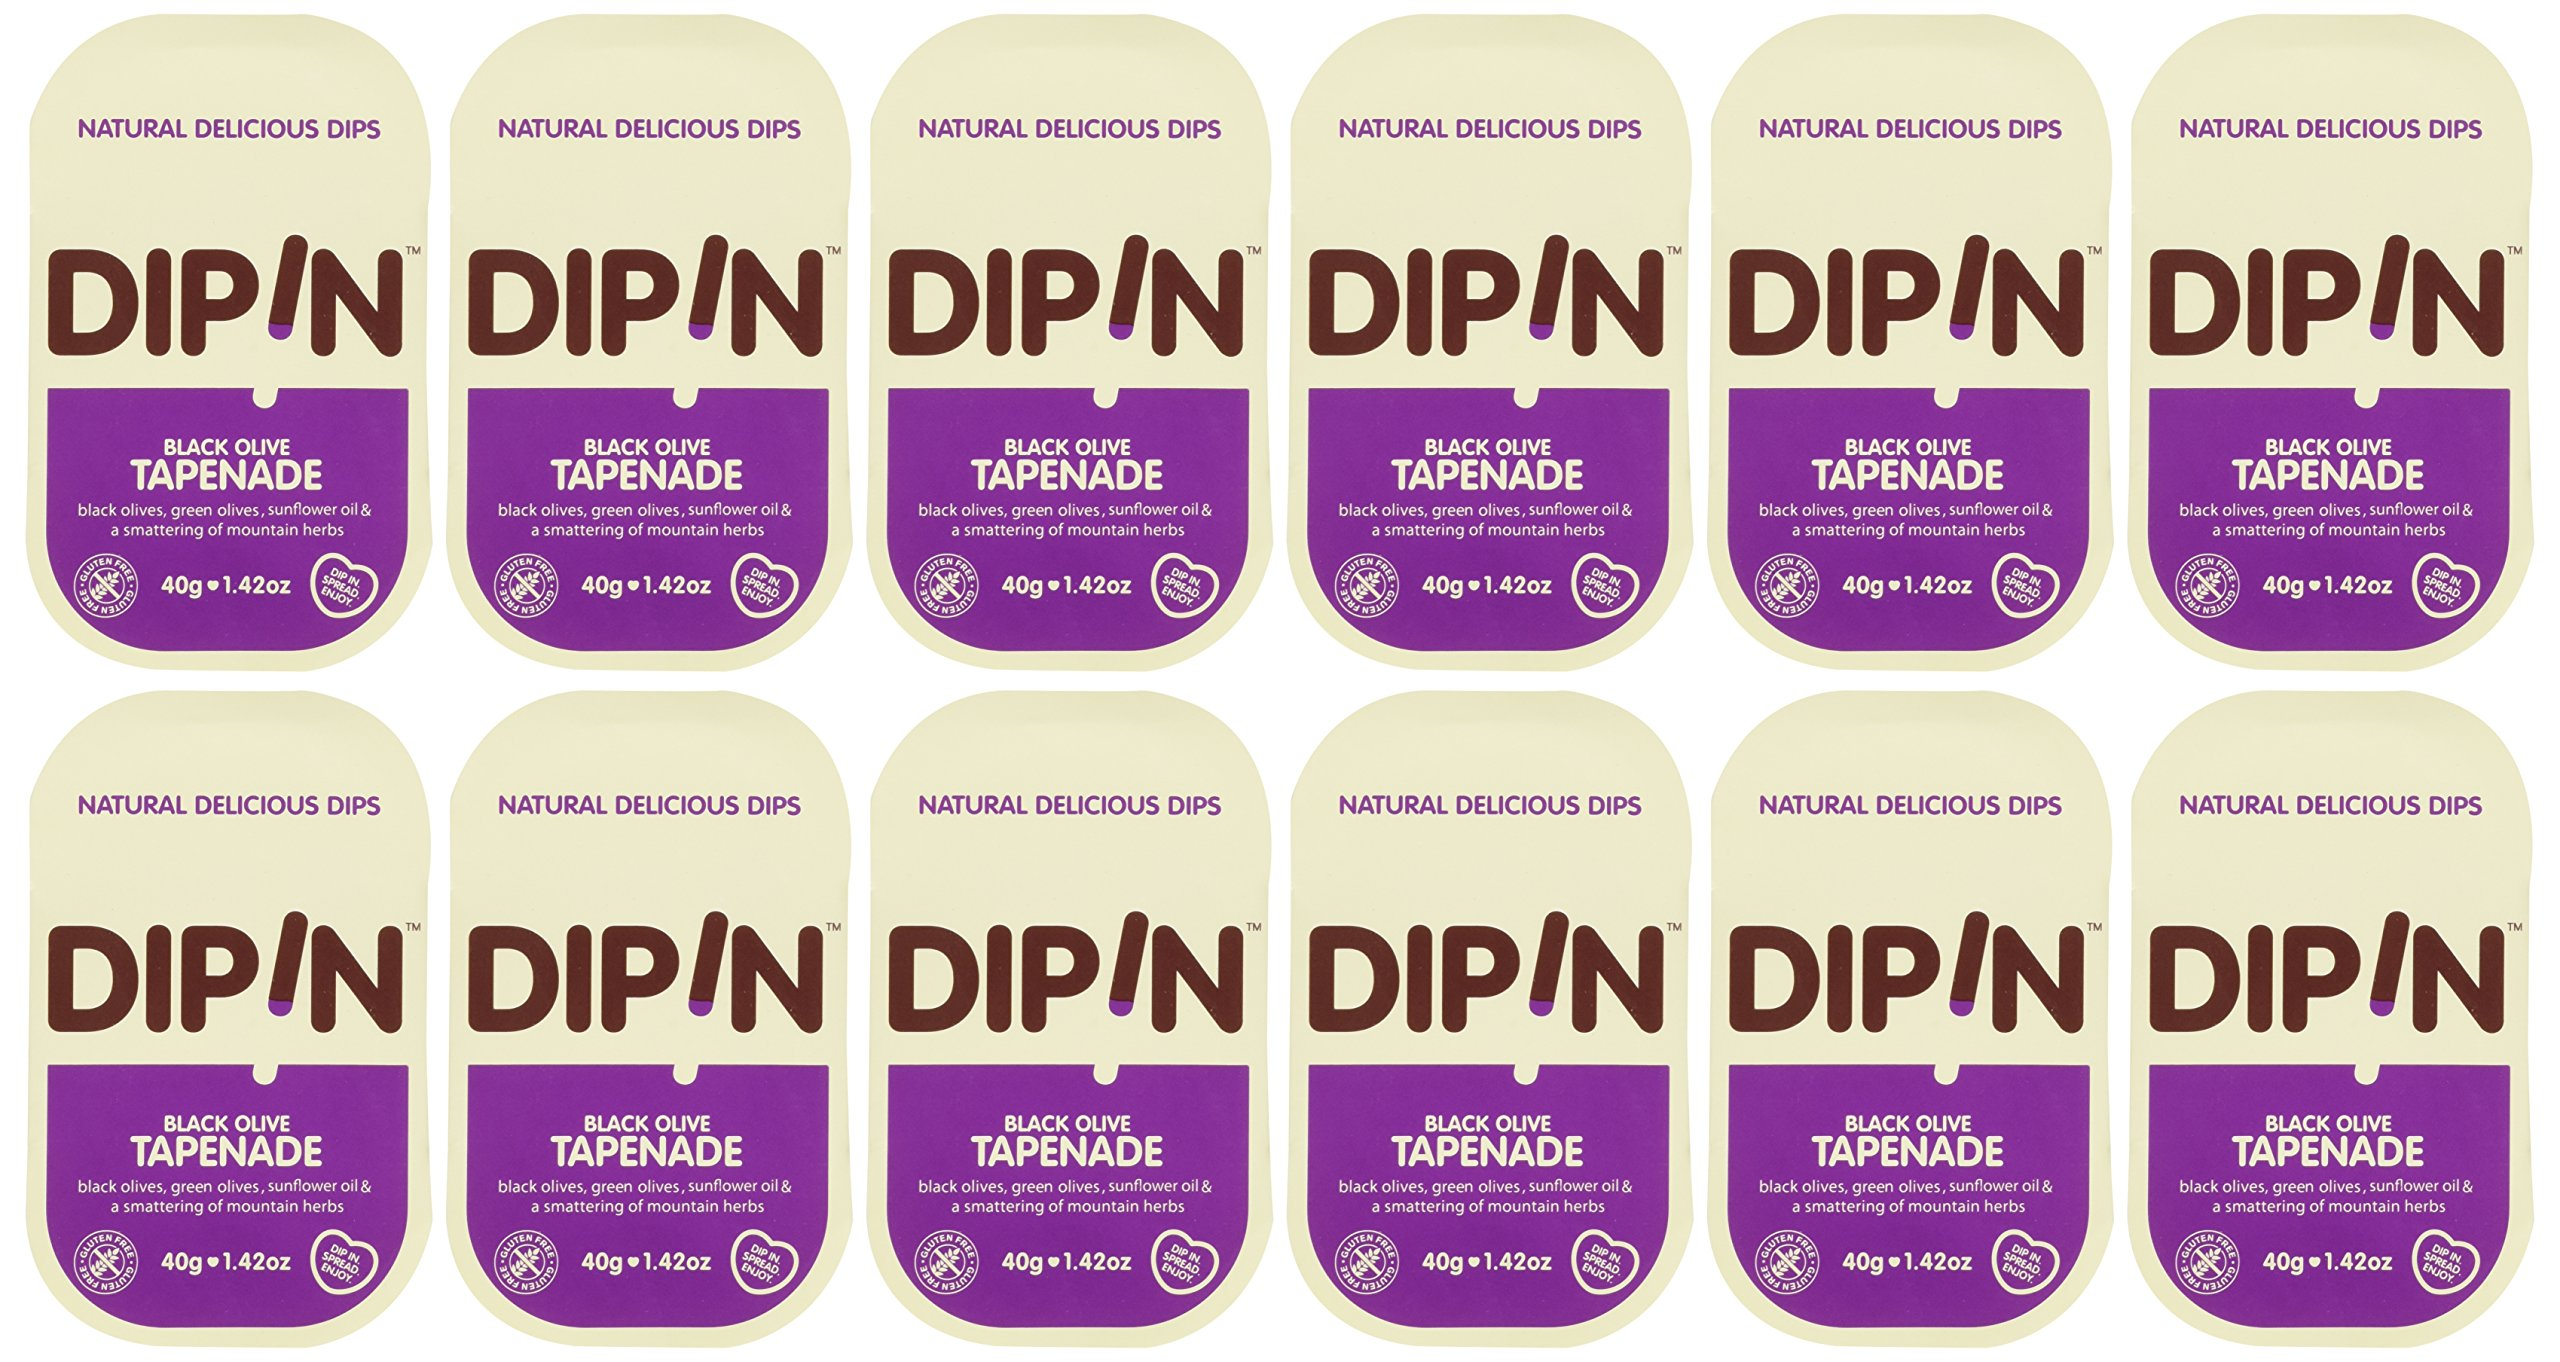 DipIn Natural Black Olive Tapenade (Pack of 12) (1.42 oz) by DIPIN